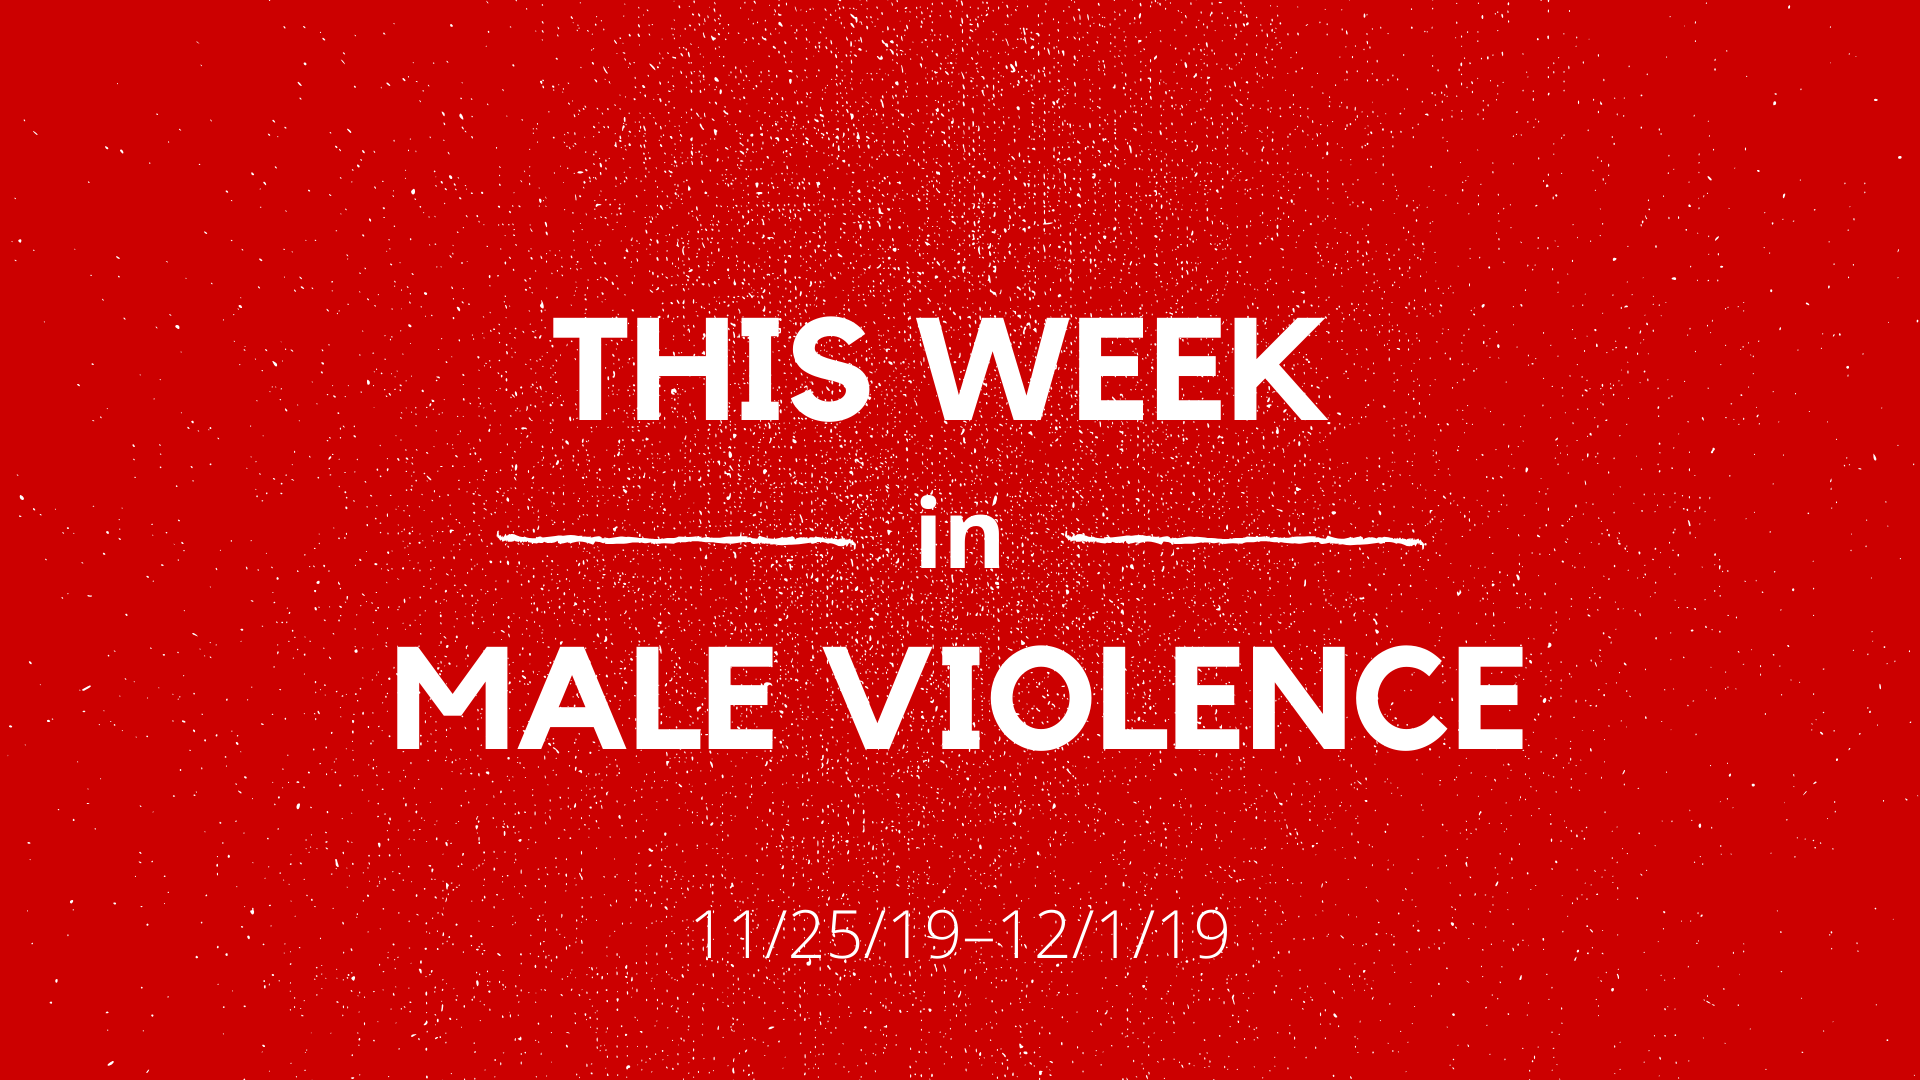 This Week In Male Violence